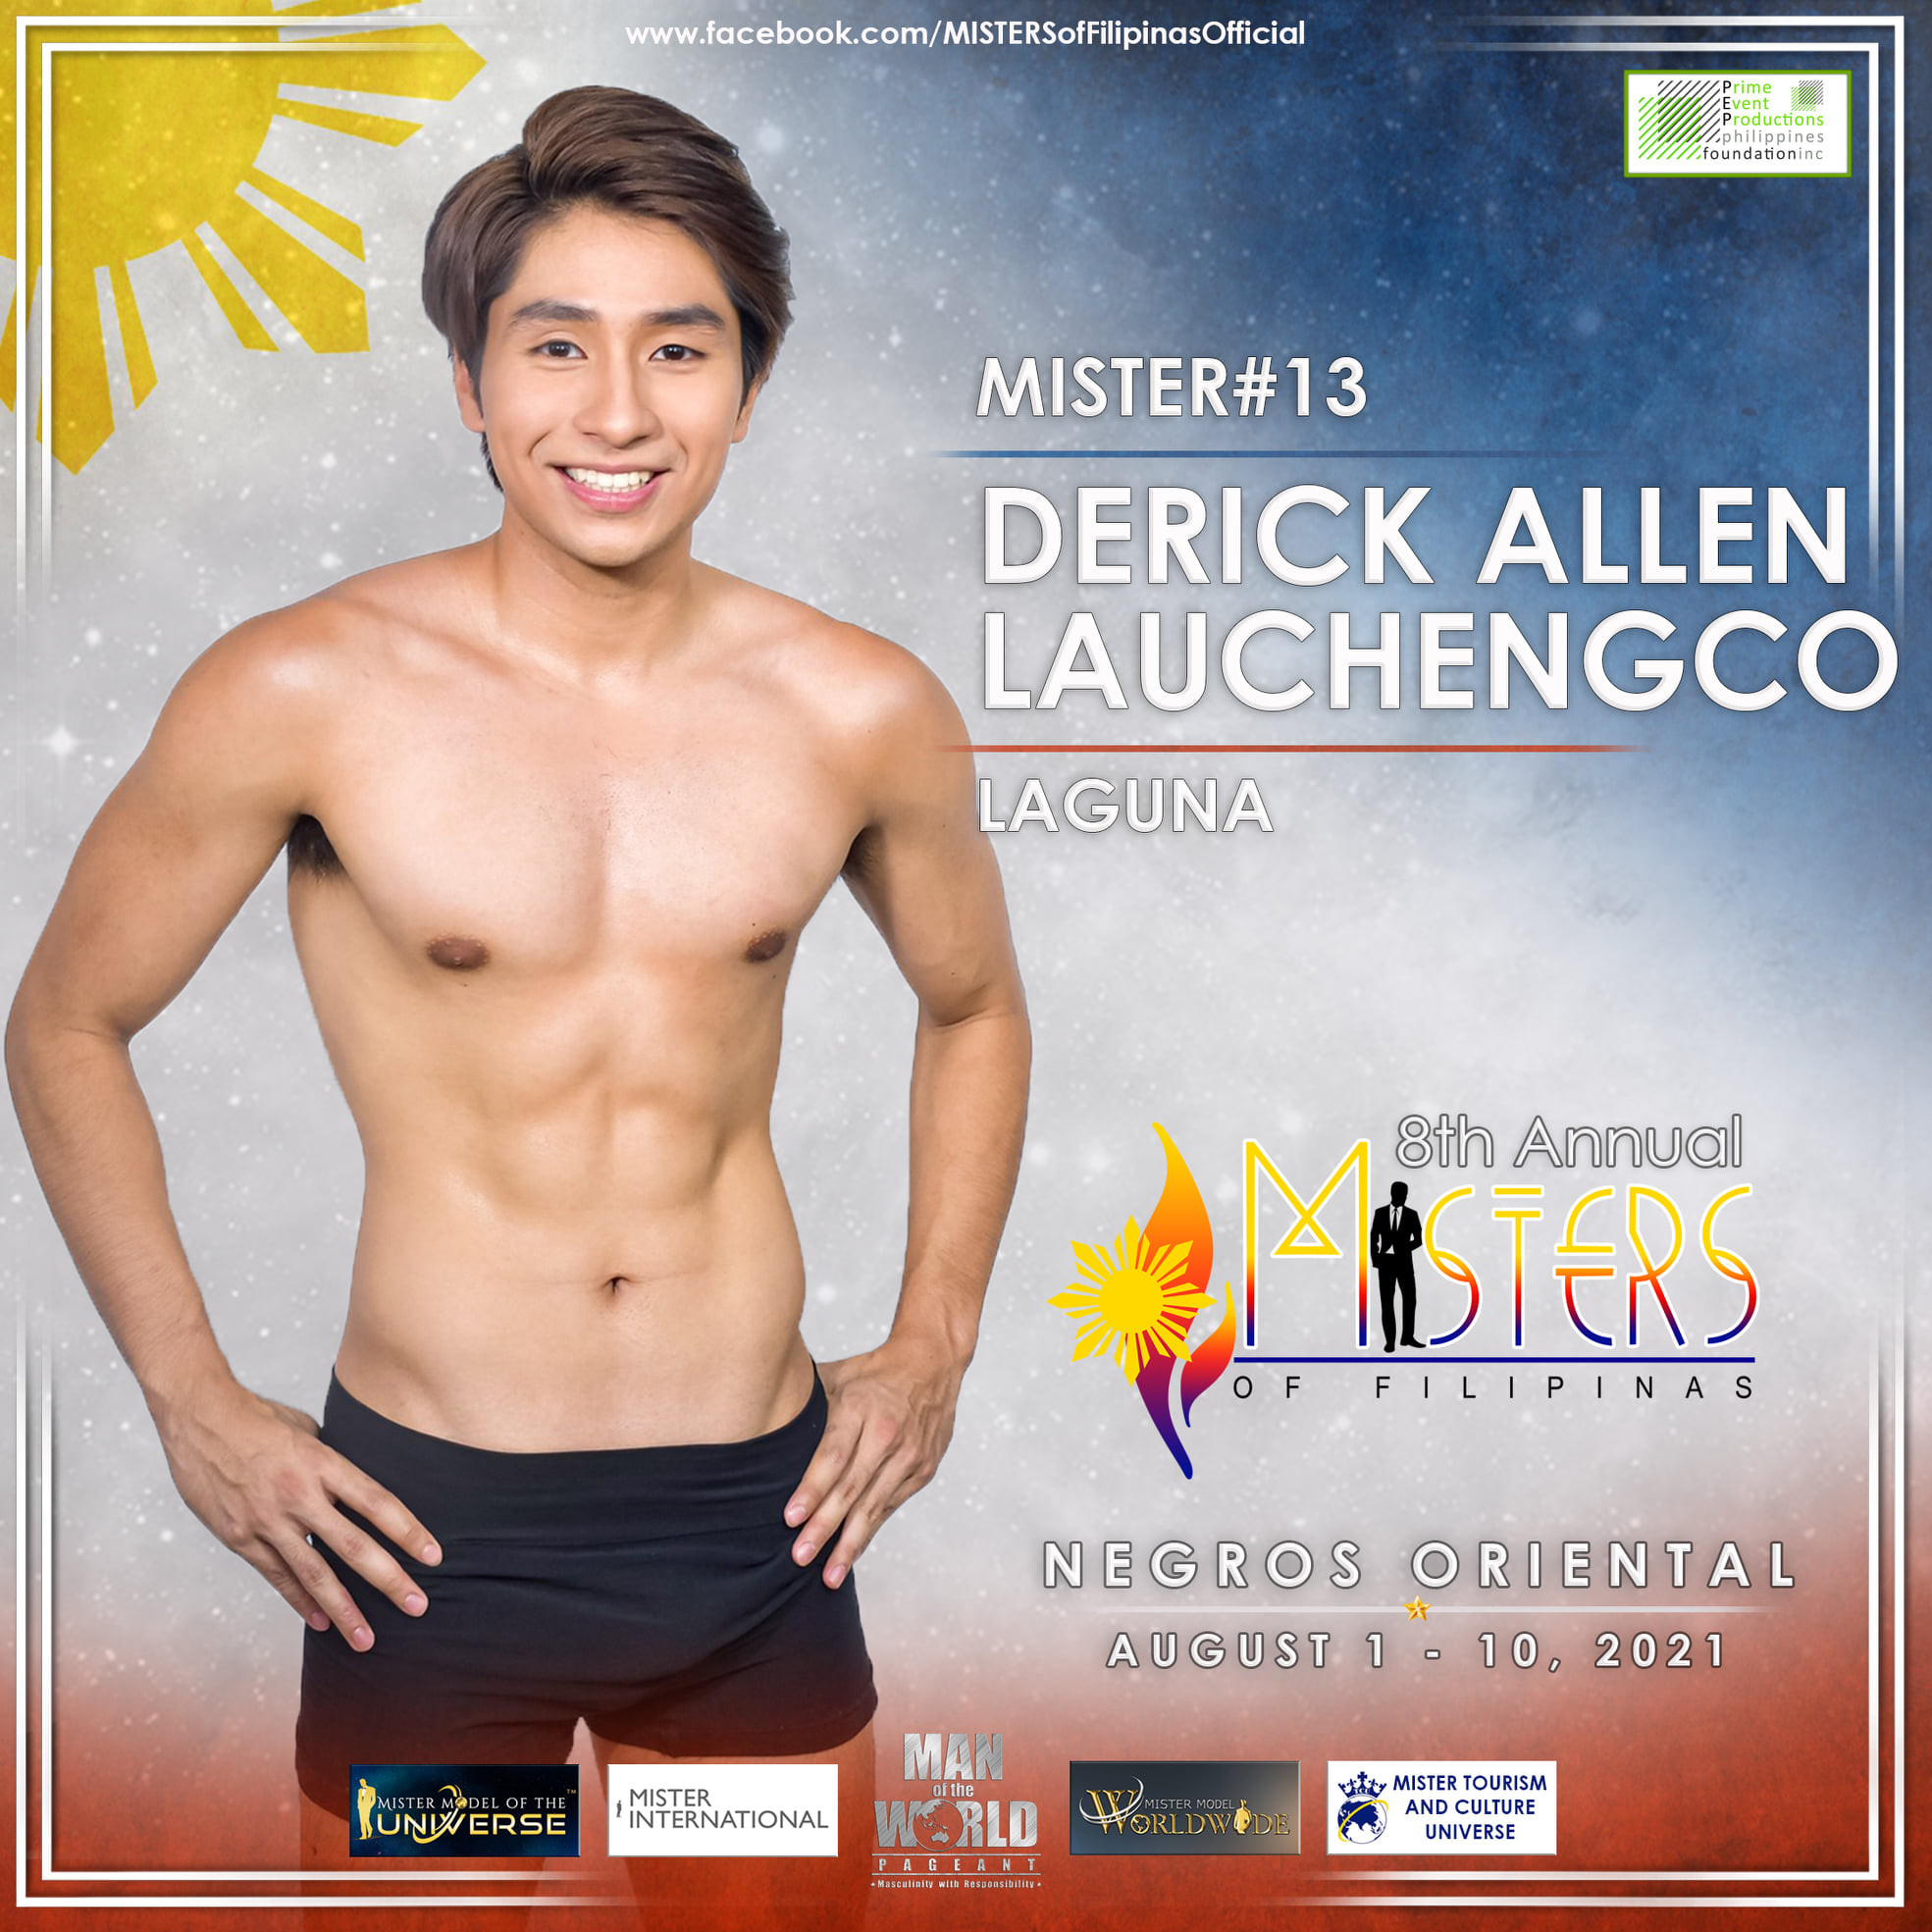 candidatos a misters of filipinas 2021. final: 27 agosto. OwByzb